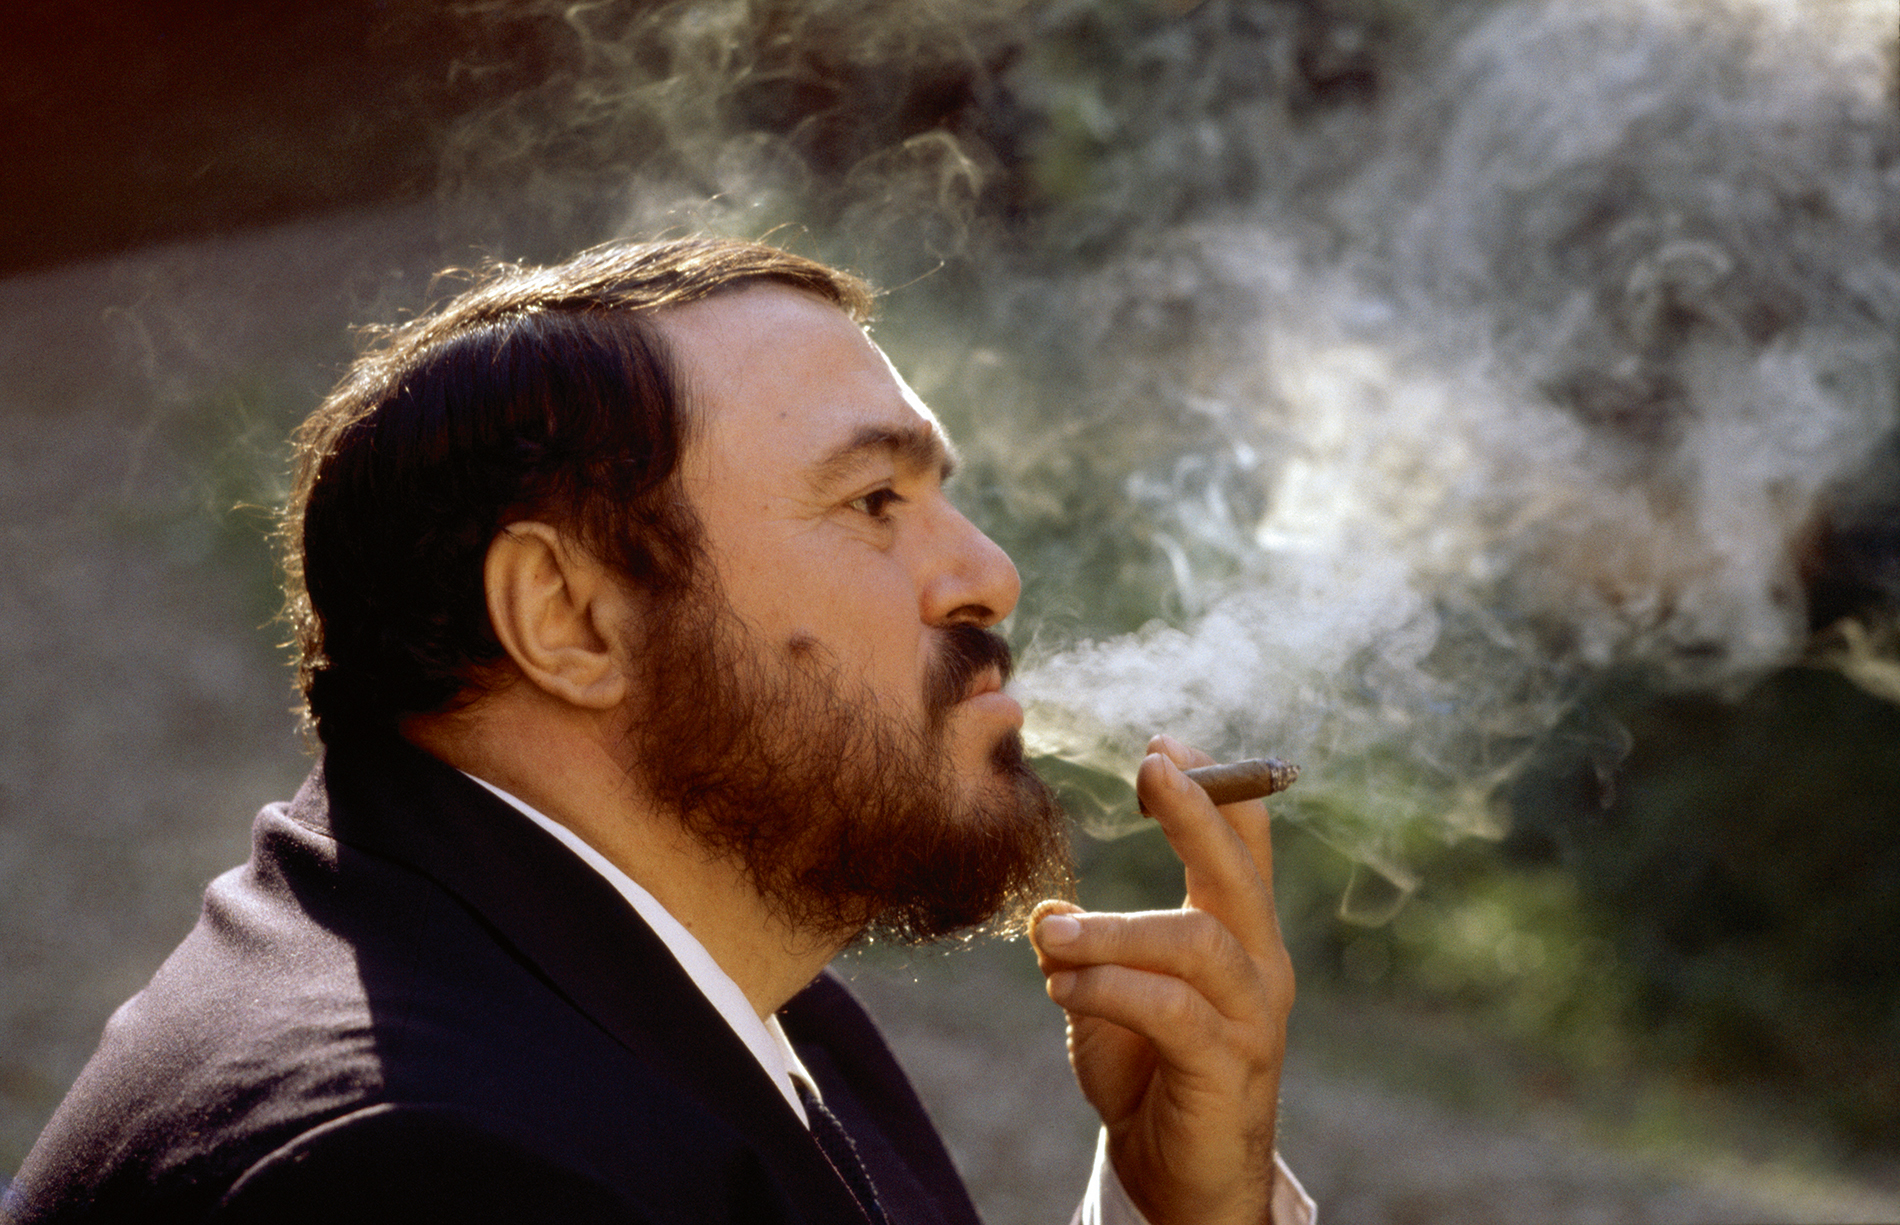 Italian opera singer Luciano Pavarotti is pictured in the grounds of his villa in Modena, Italy. © Eva Sereny